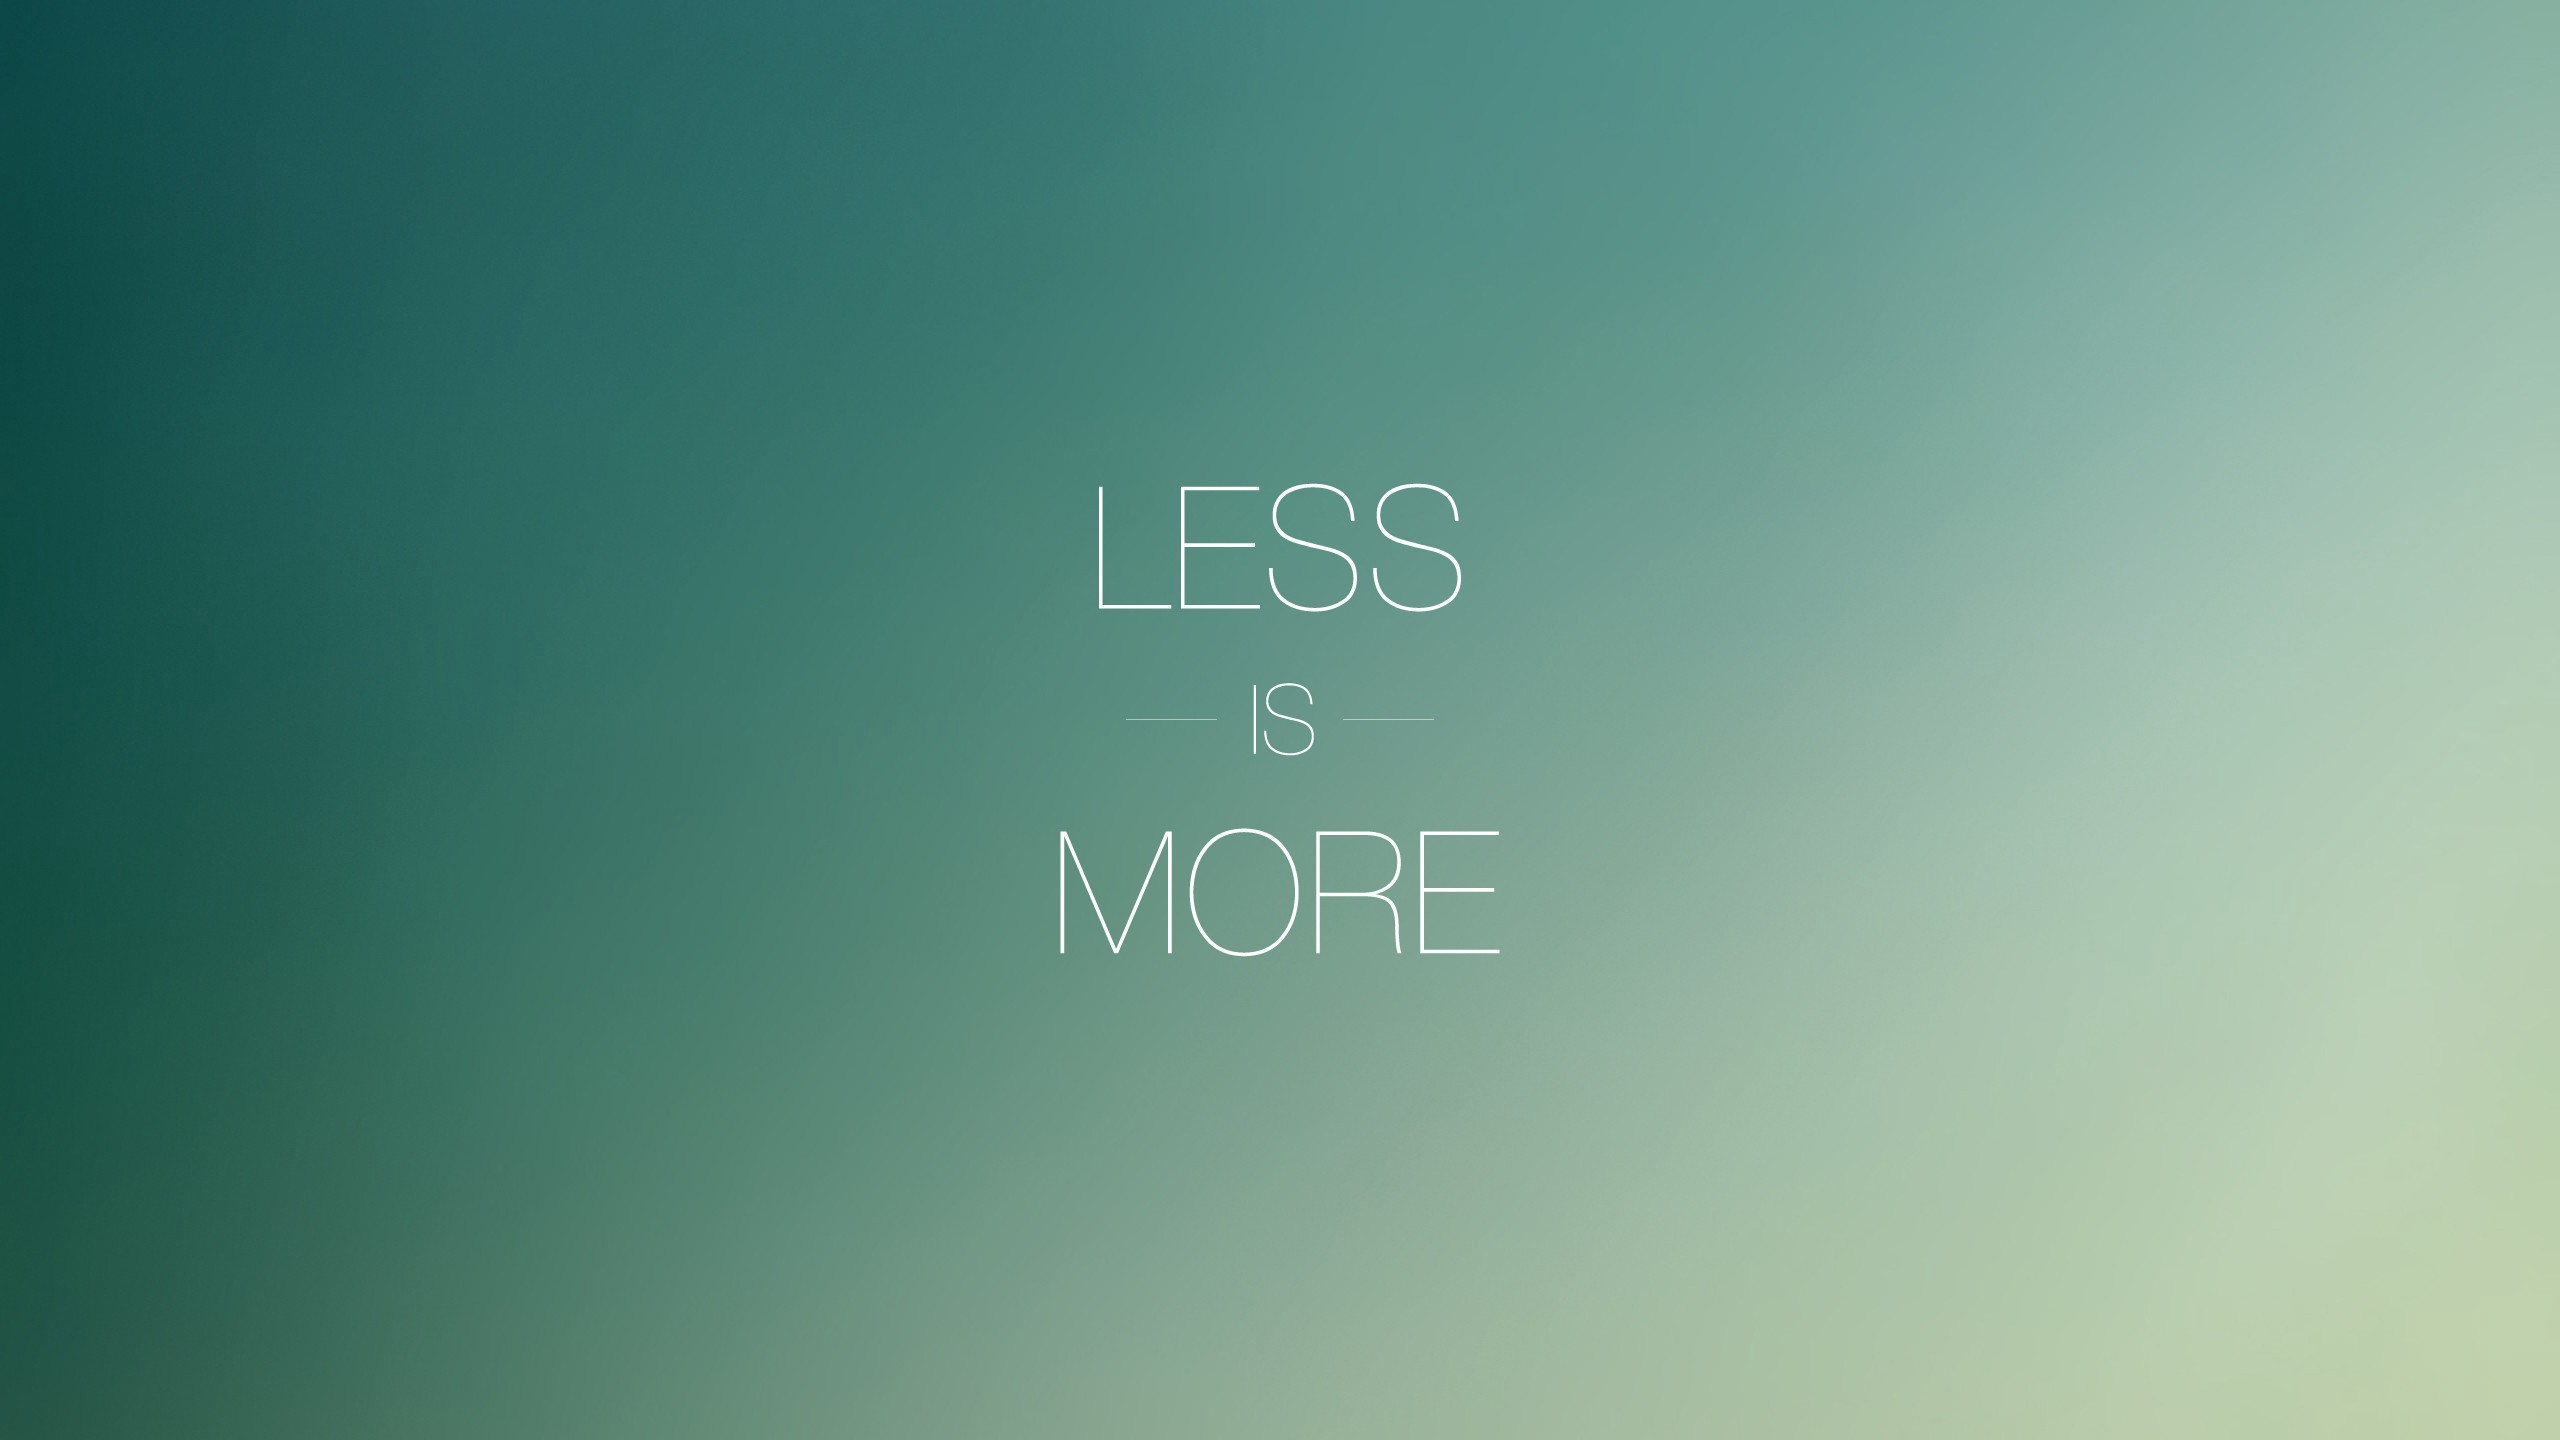 Less Is More This Applies To Personal Robots Too